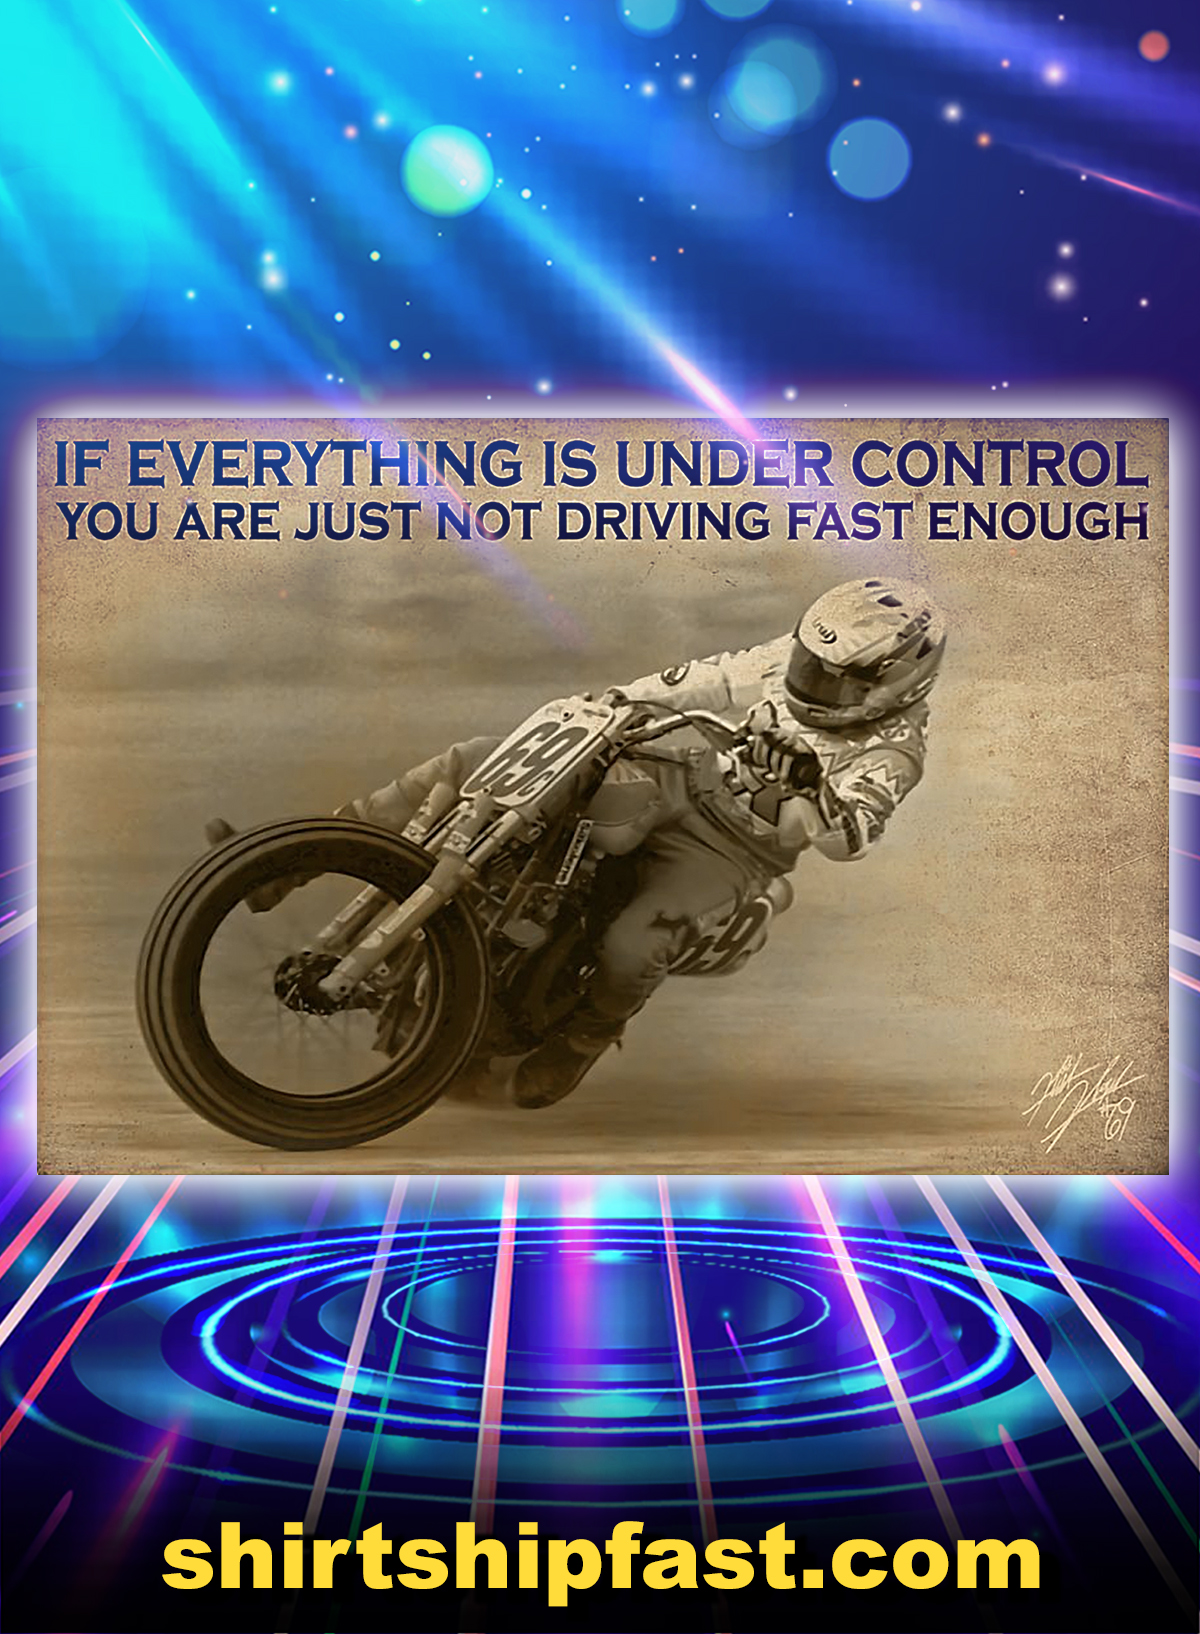 Motor racing if everything is under control you are just not driving fast enough poster - A4